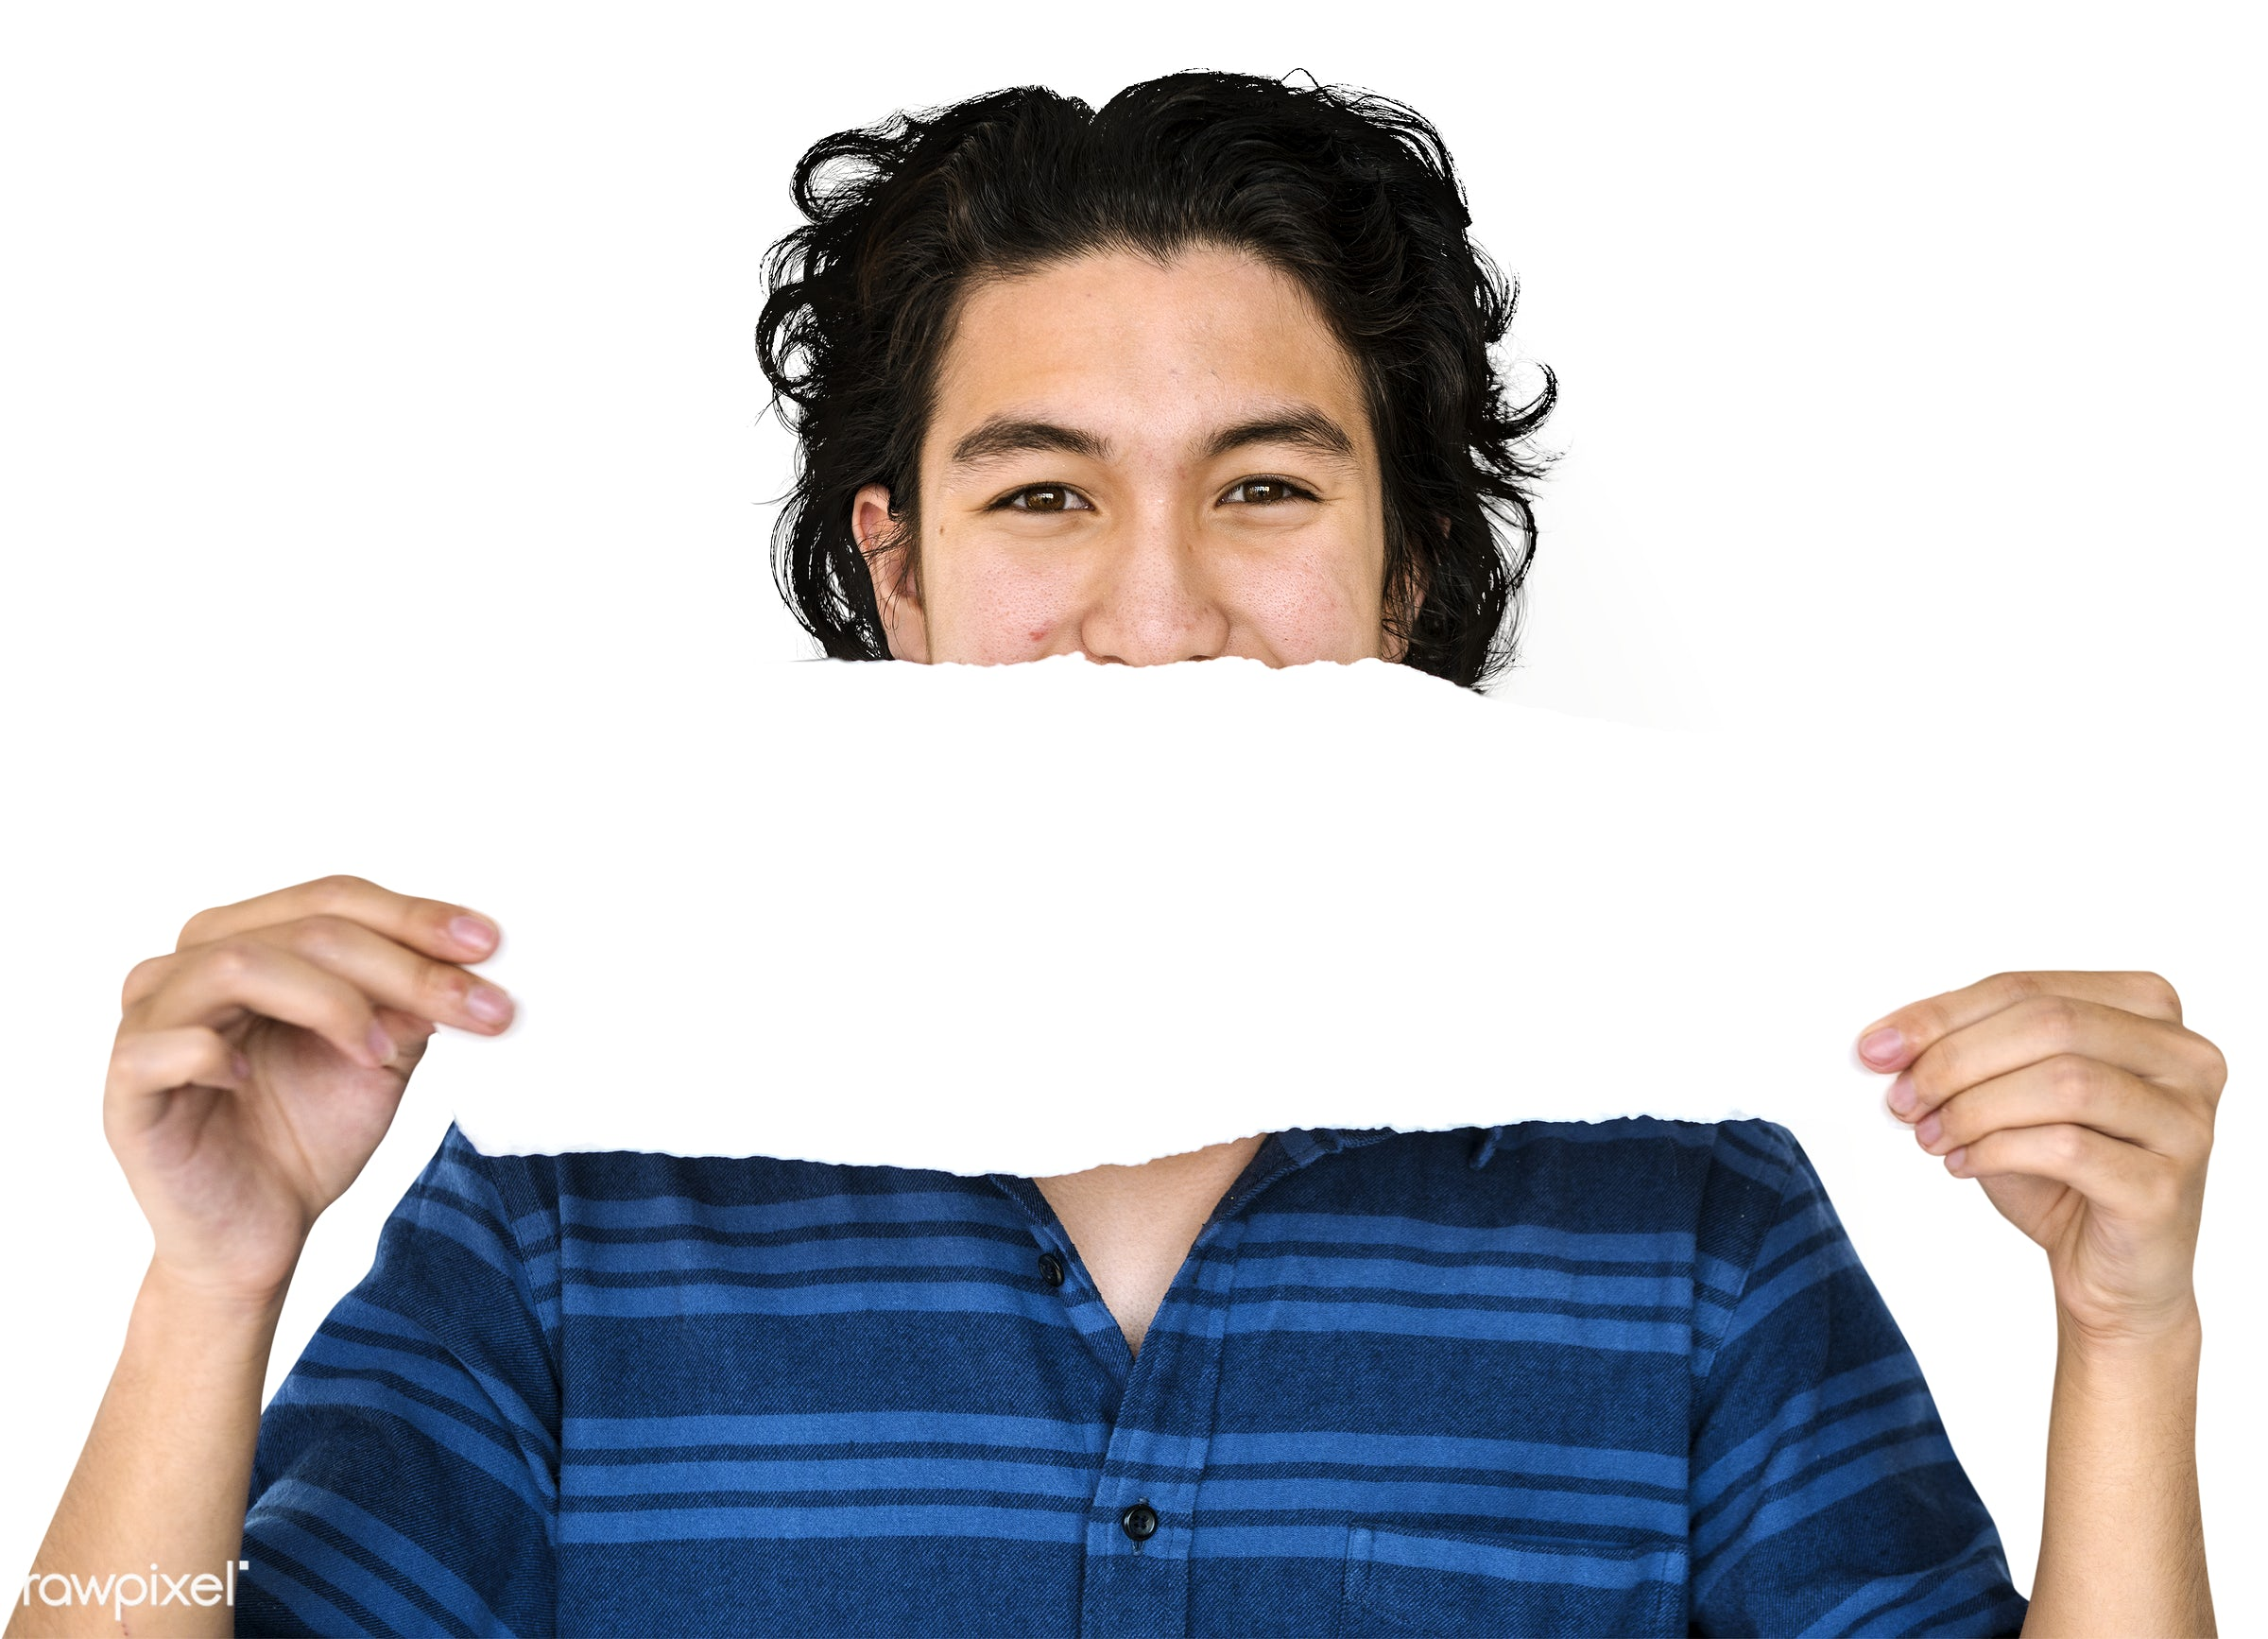 adult, asian ethnicity, background, banner, blank, casual, cheerful, copy space, cover mouth, guy, holding, isolated,...